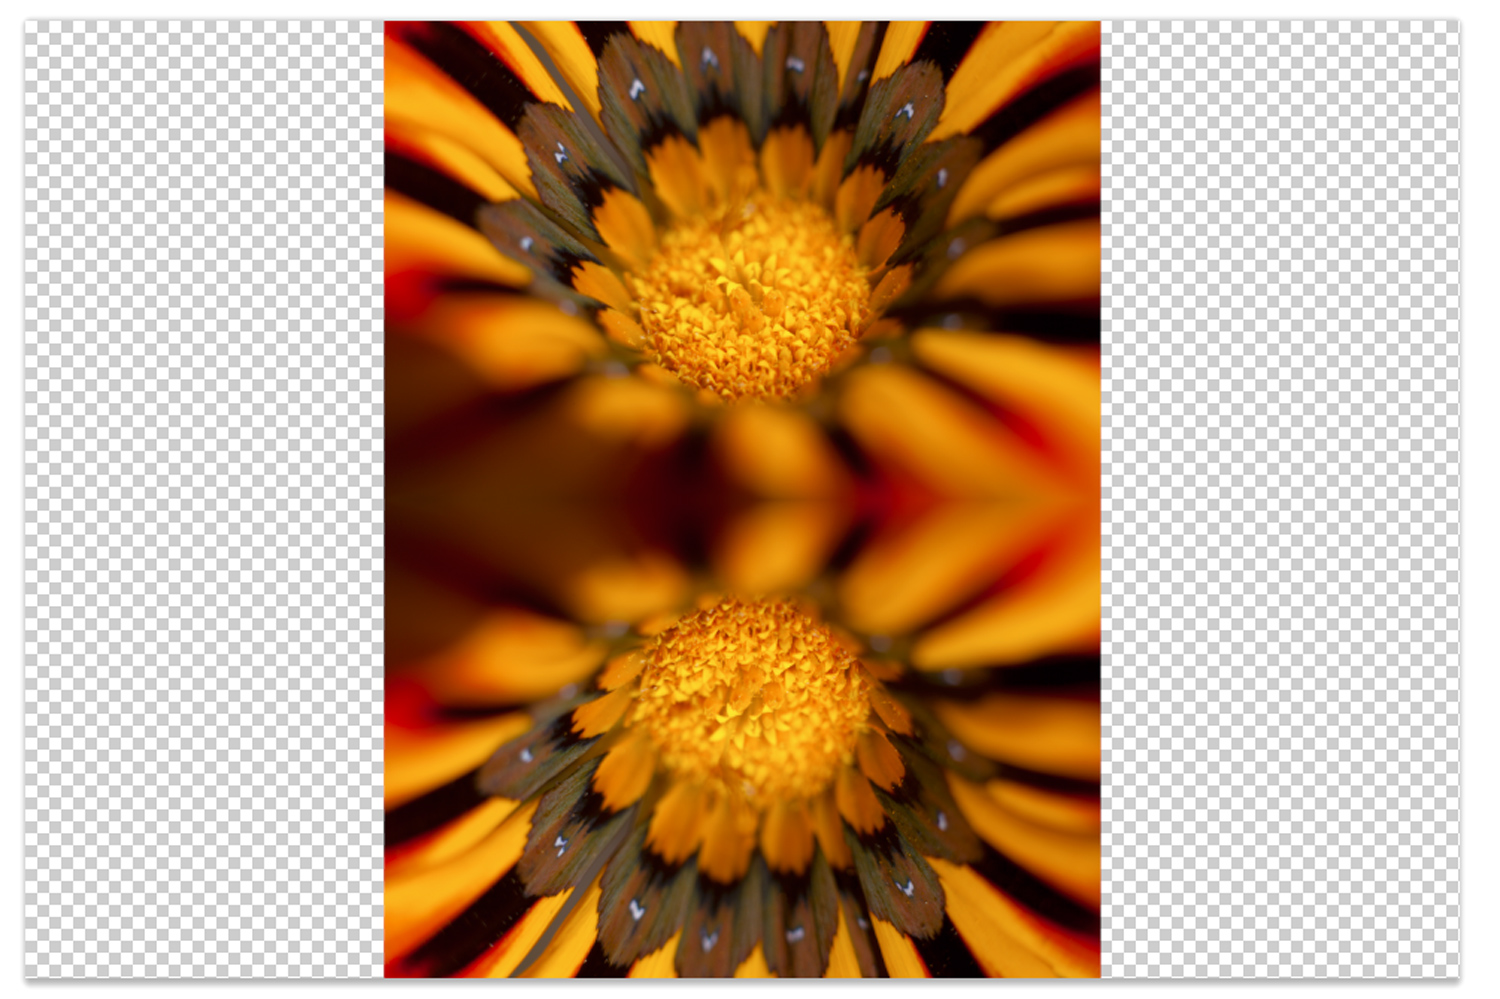 create mandalas in photoshop with stack modes – duplicating the image